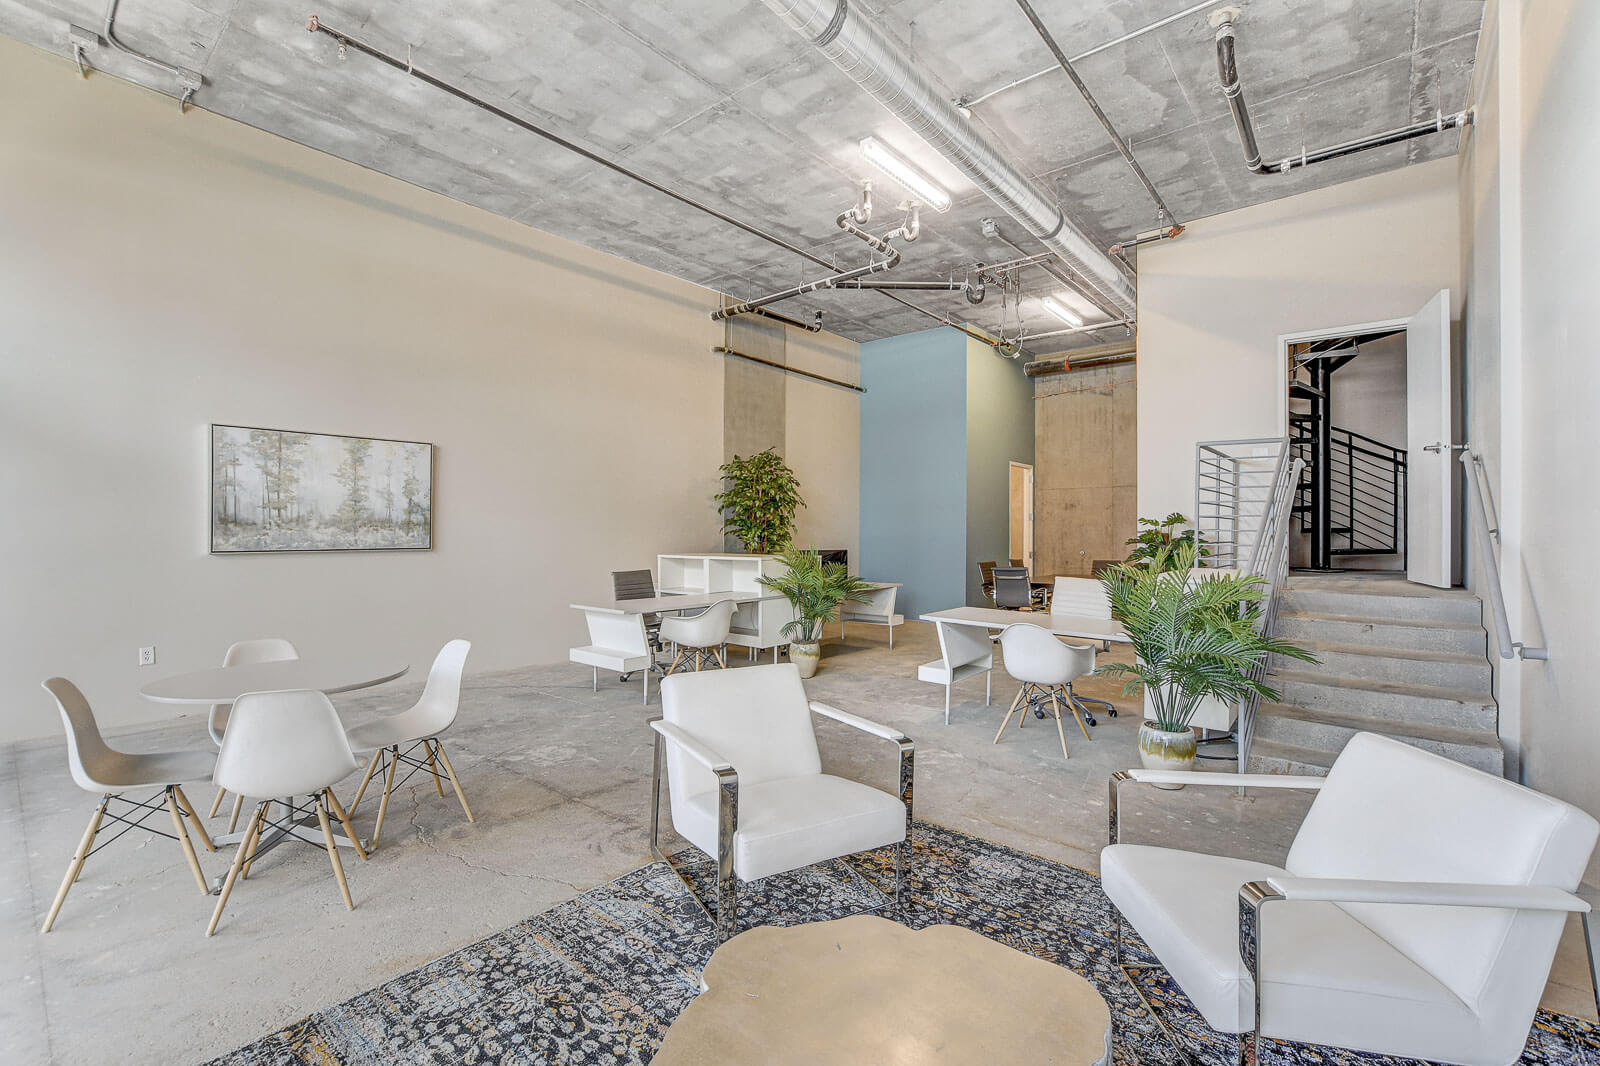 interior shot of a downstairs workspace at Juhl with a variety of tables and white chairs